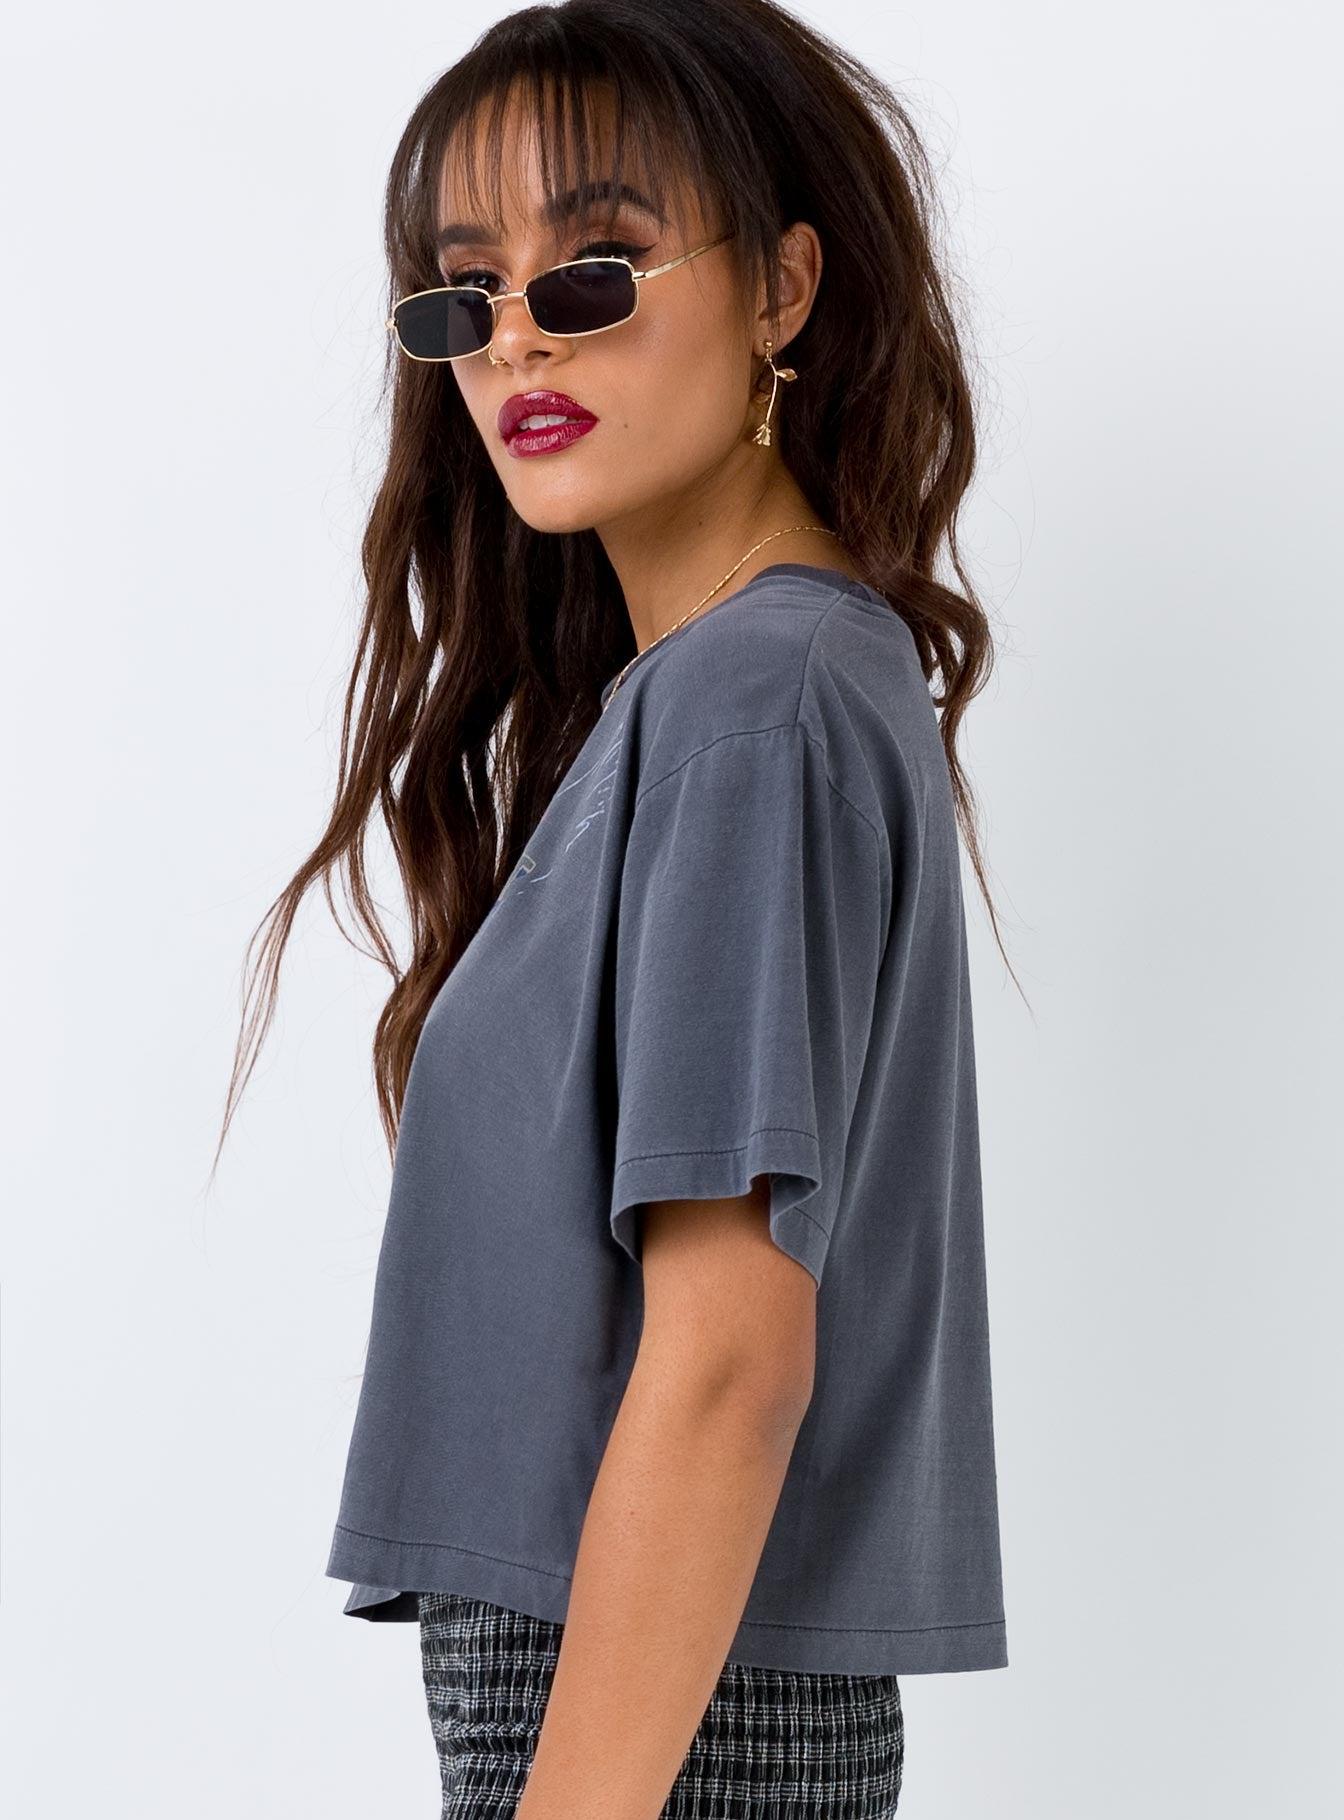 Thrills Cropped Oversized Tee Free Spirit Vintage Black